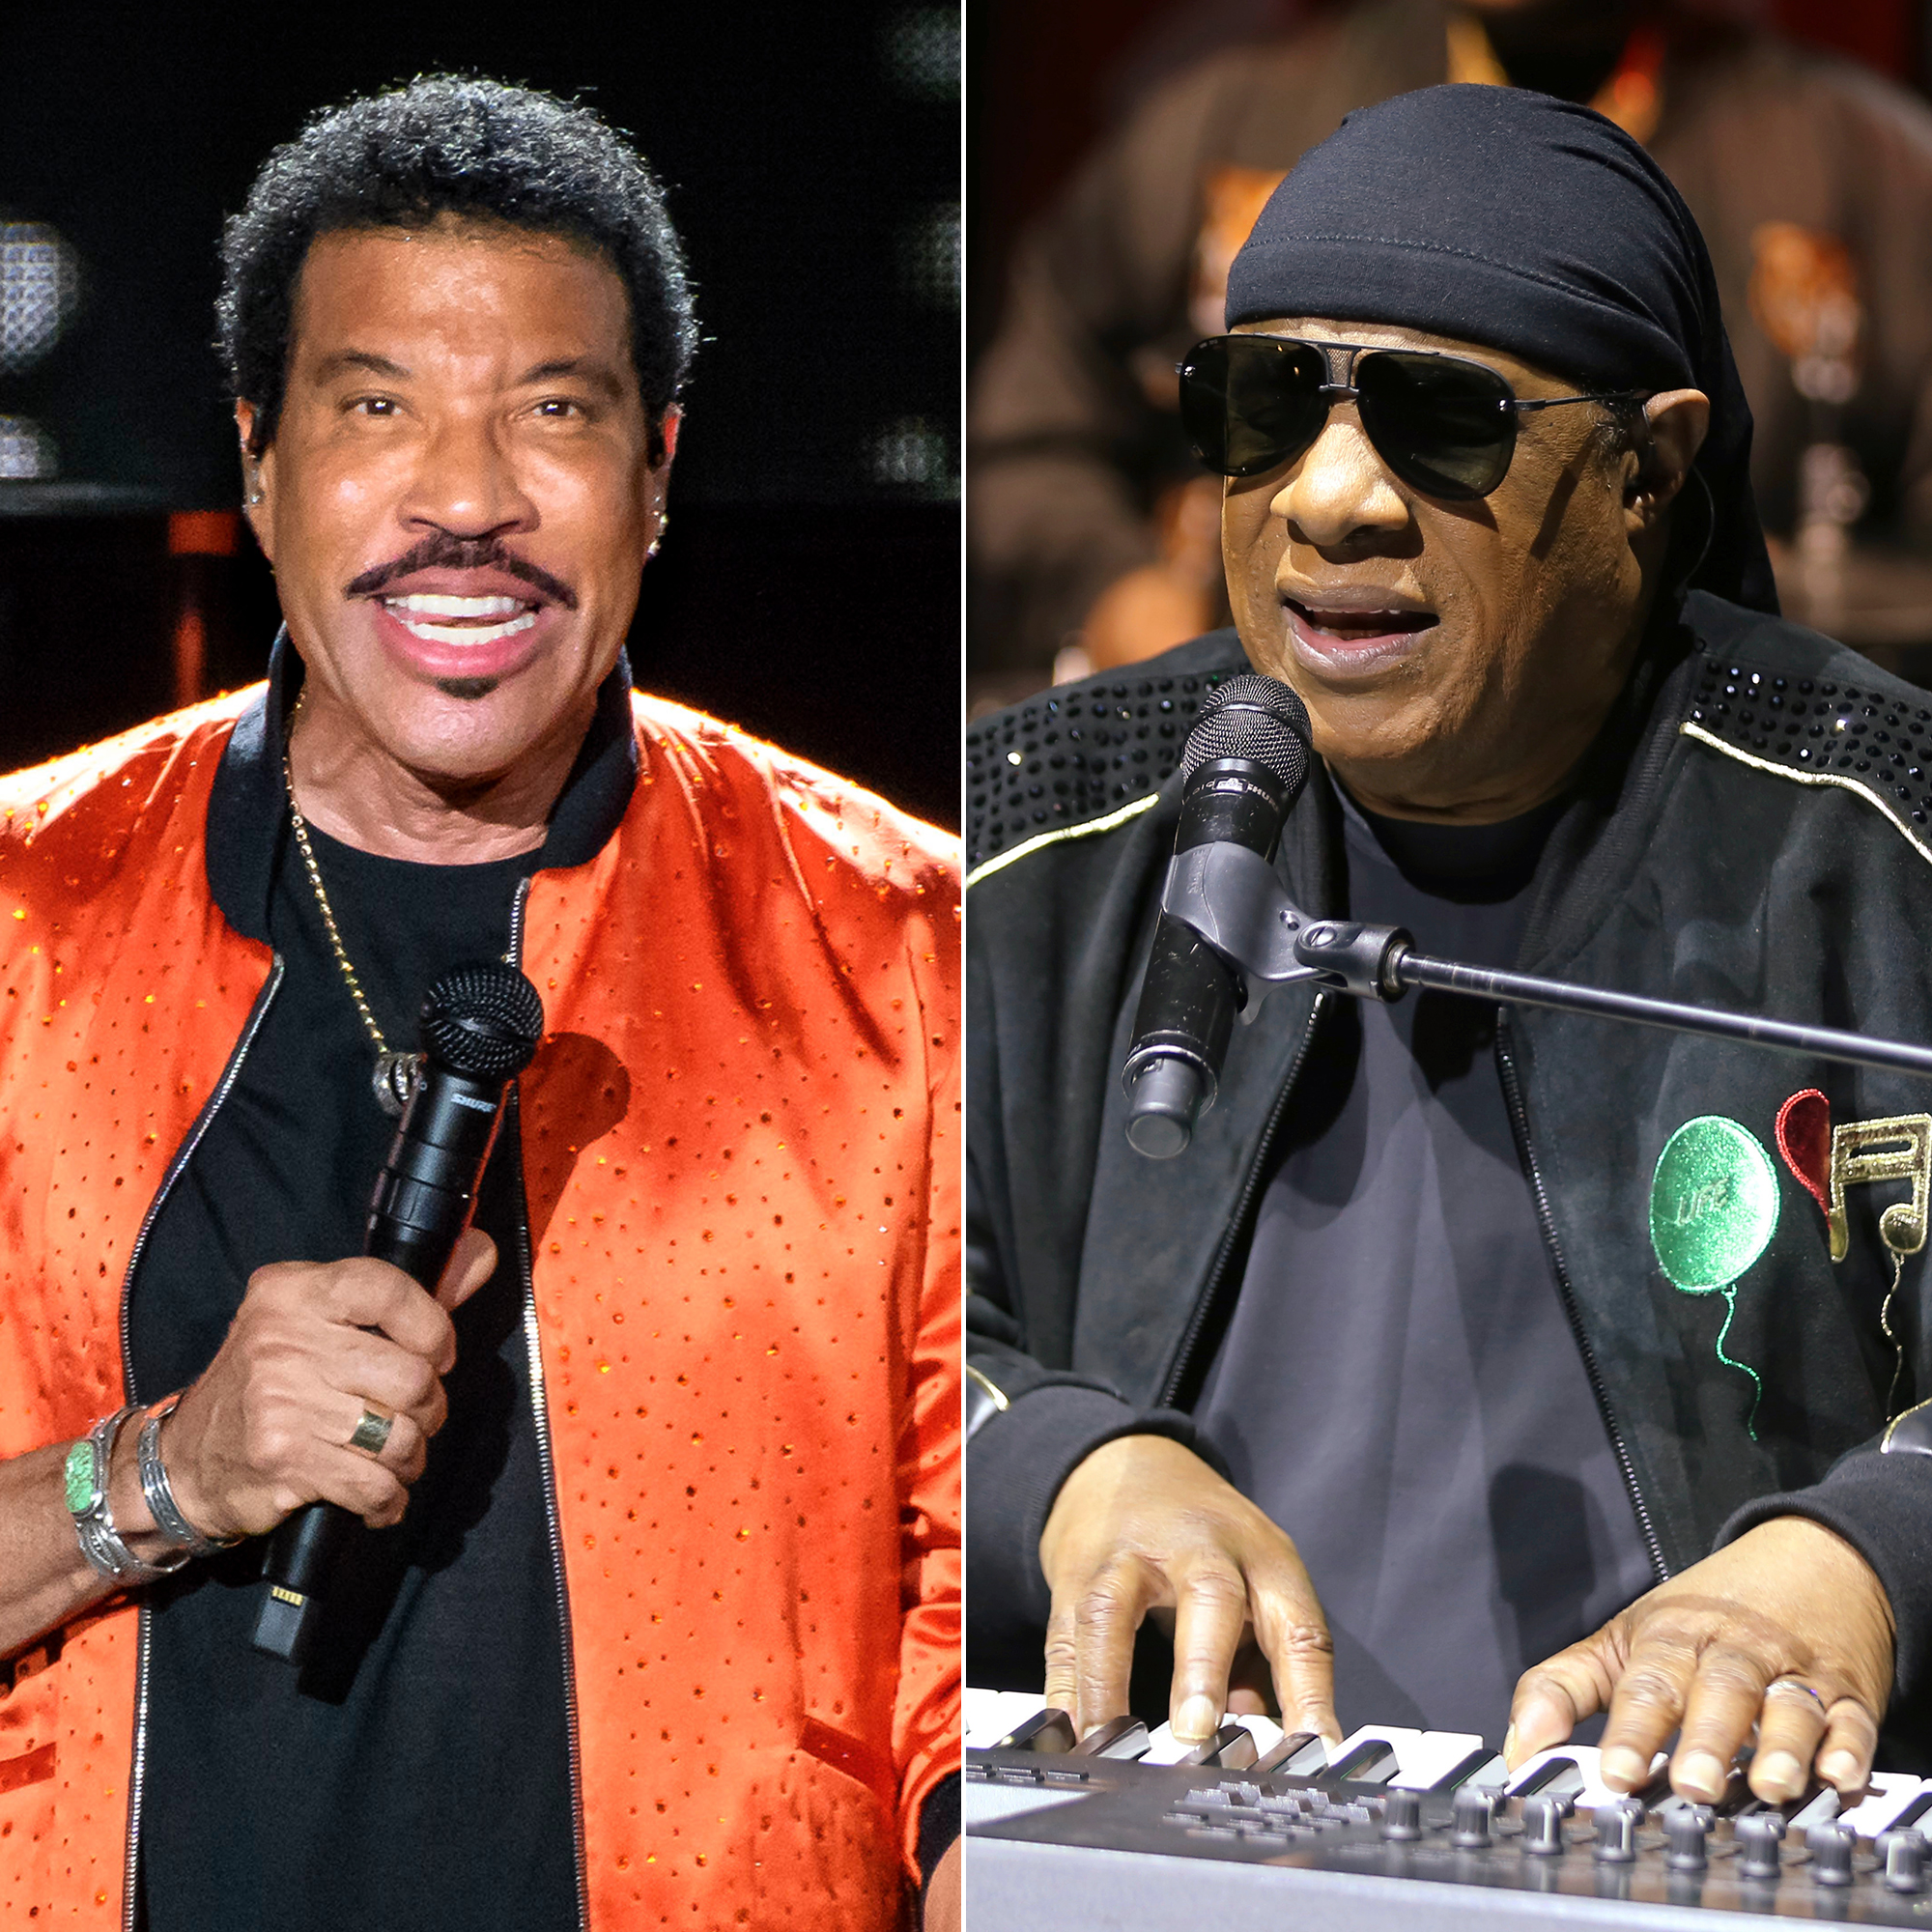 Lionel Richie Explains Why He Is Convinced Stevie Wonder Has Been Able to See After All These Years